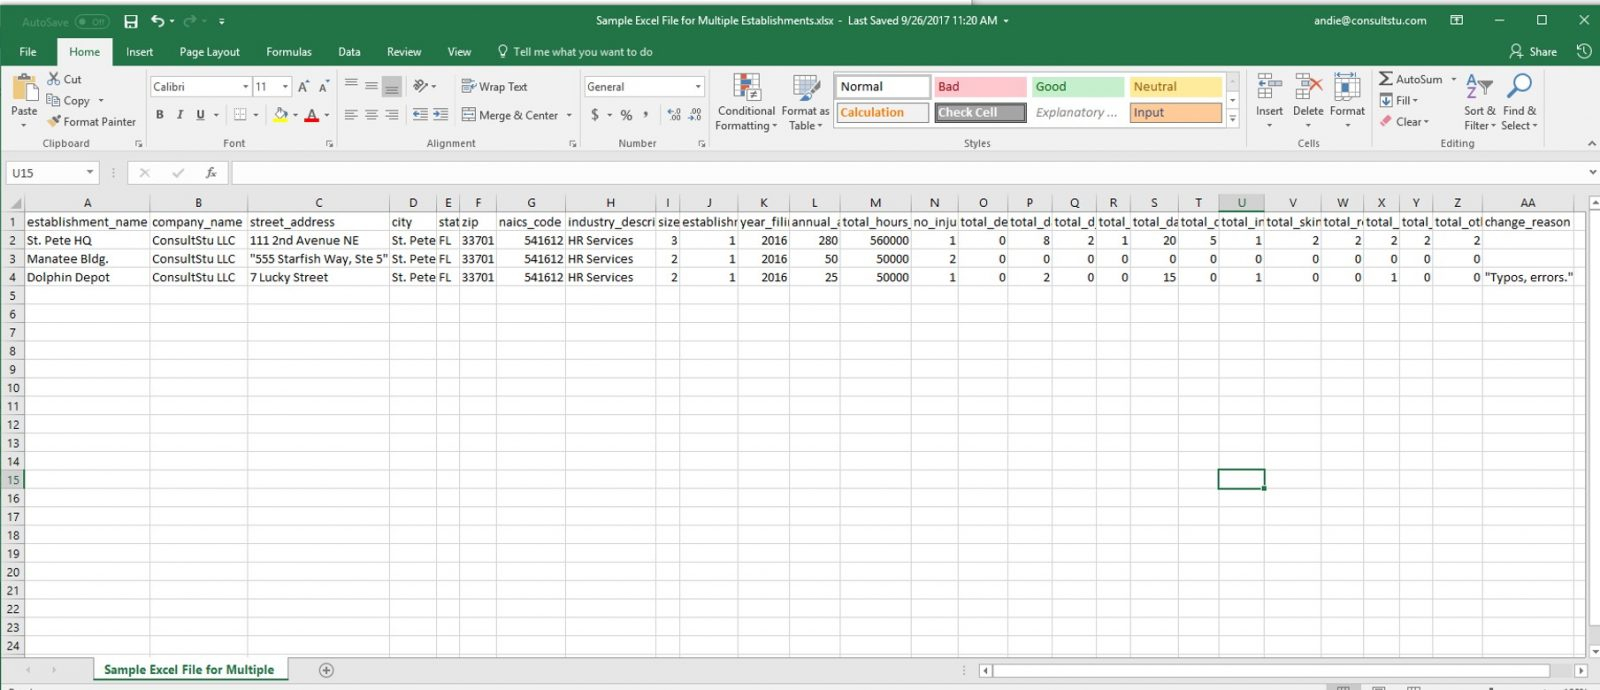 Ncci Edits 2018 Excel Spreadsheet Within Ncci Edits Excel Spreadsheet Sample Multiple Establishments Examples